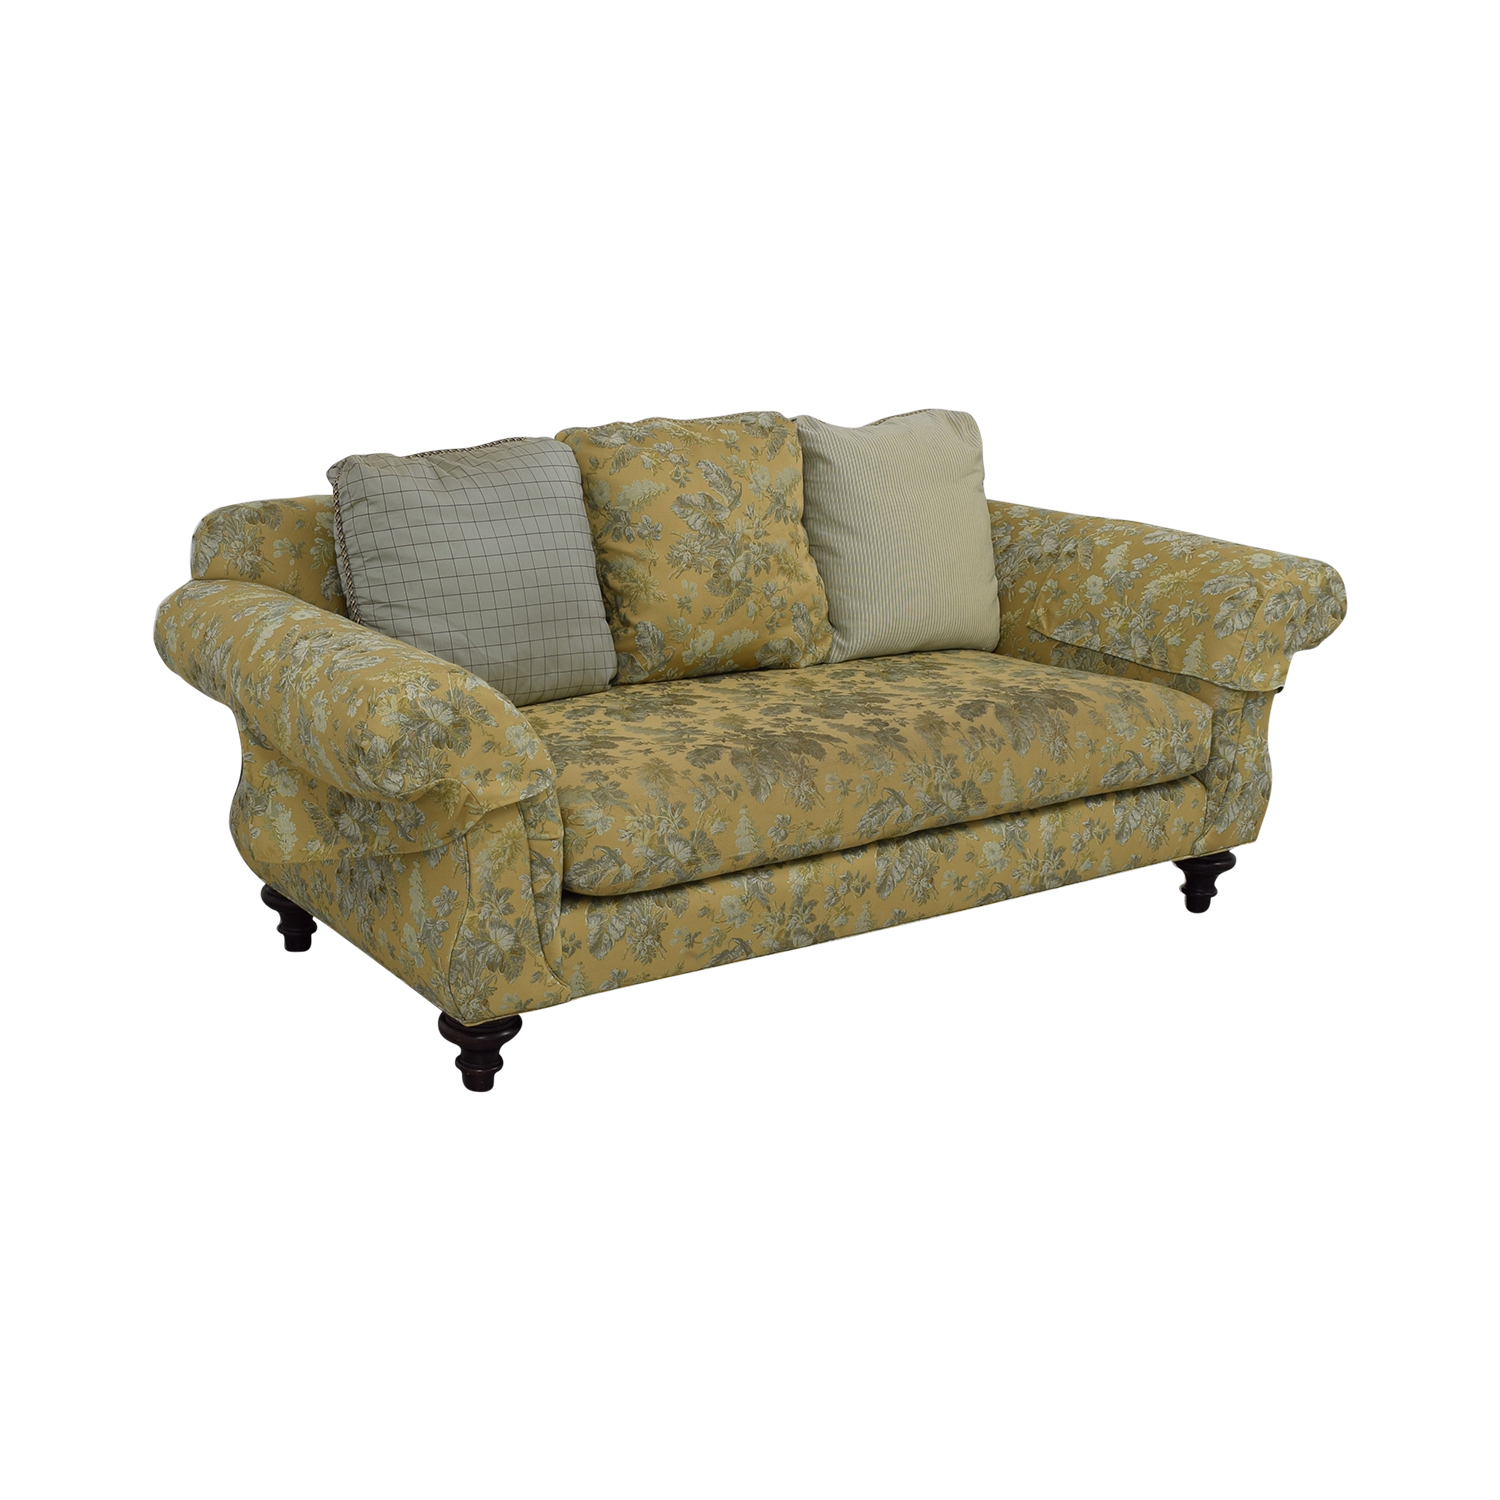 Vanguard Furniture with Down-Filled Pillows / Sofas